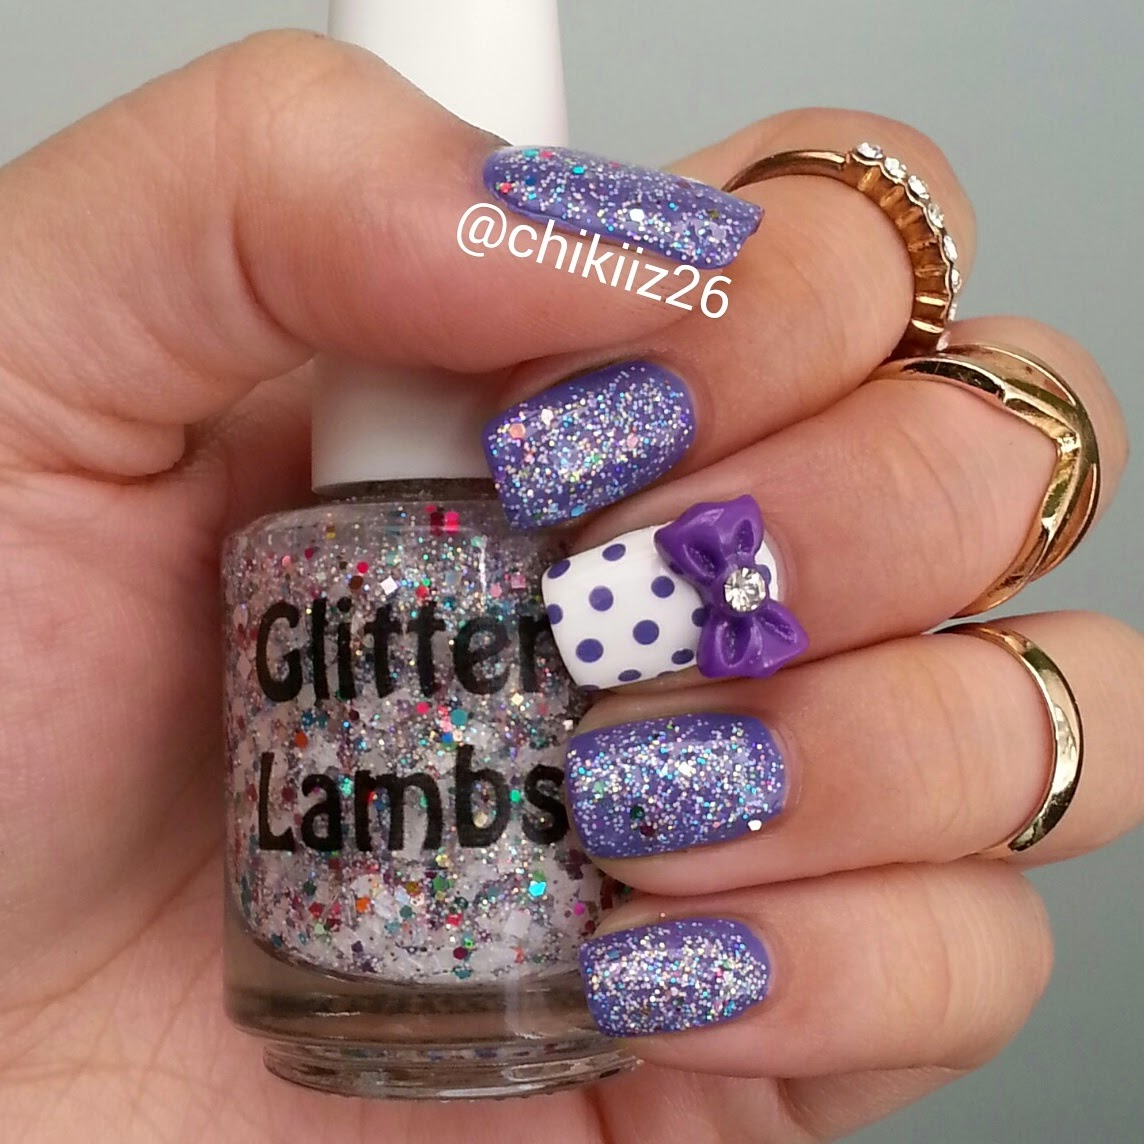 Unicorns Love Sugar Cubes Glitter Lambs Nail Polish Worn by @Chikiiz26